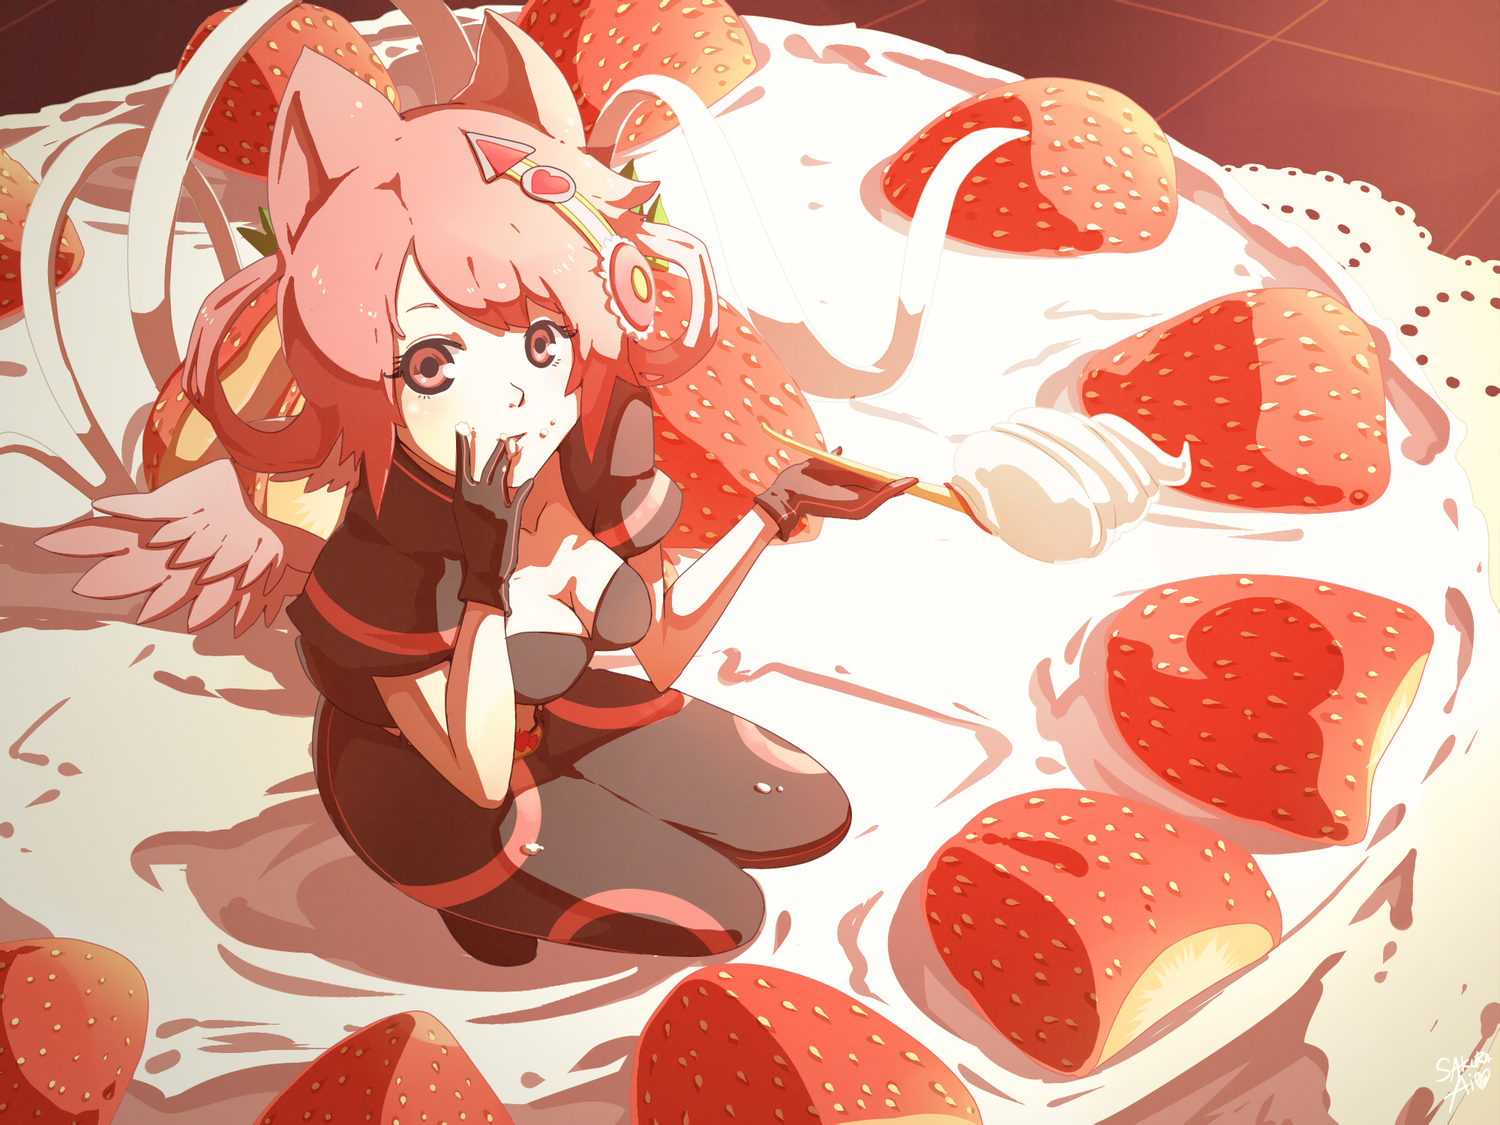 animal_ears bodysuit ceal-sakura-ai cleavage food red_hair strawberry wings